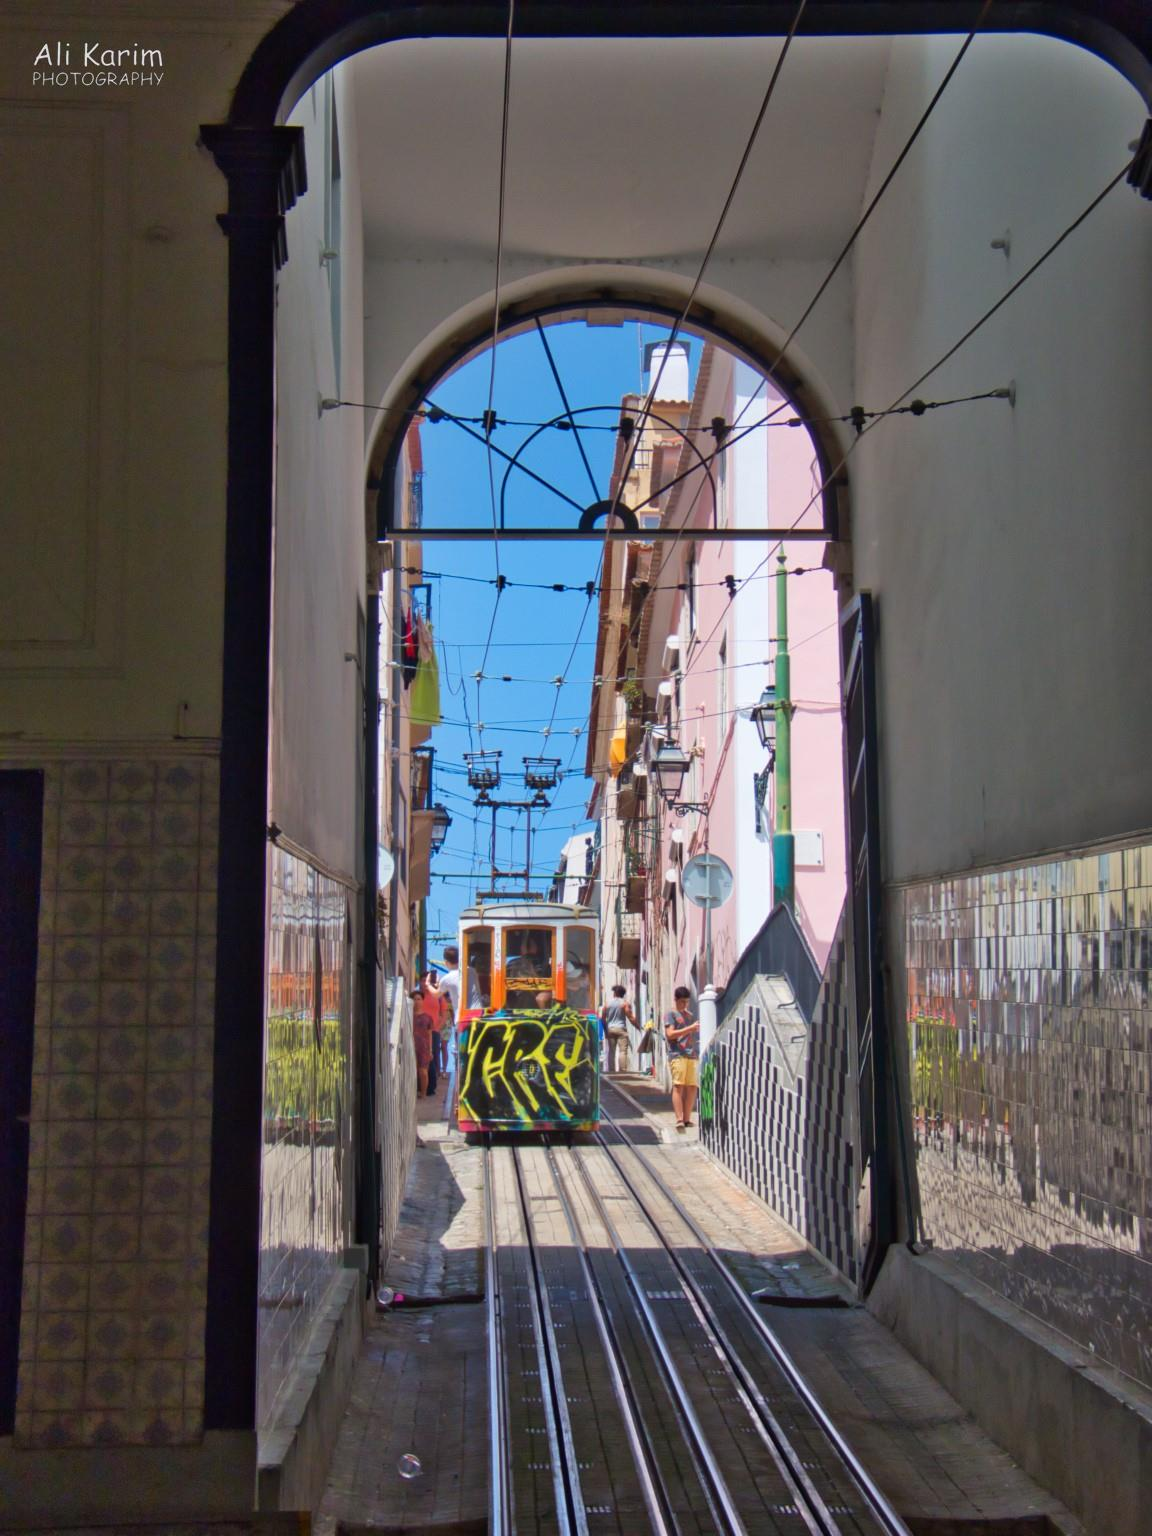 Another funicular (Ascensor)